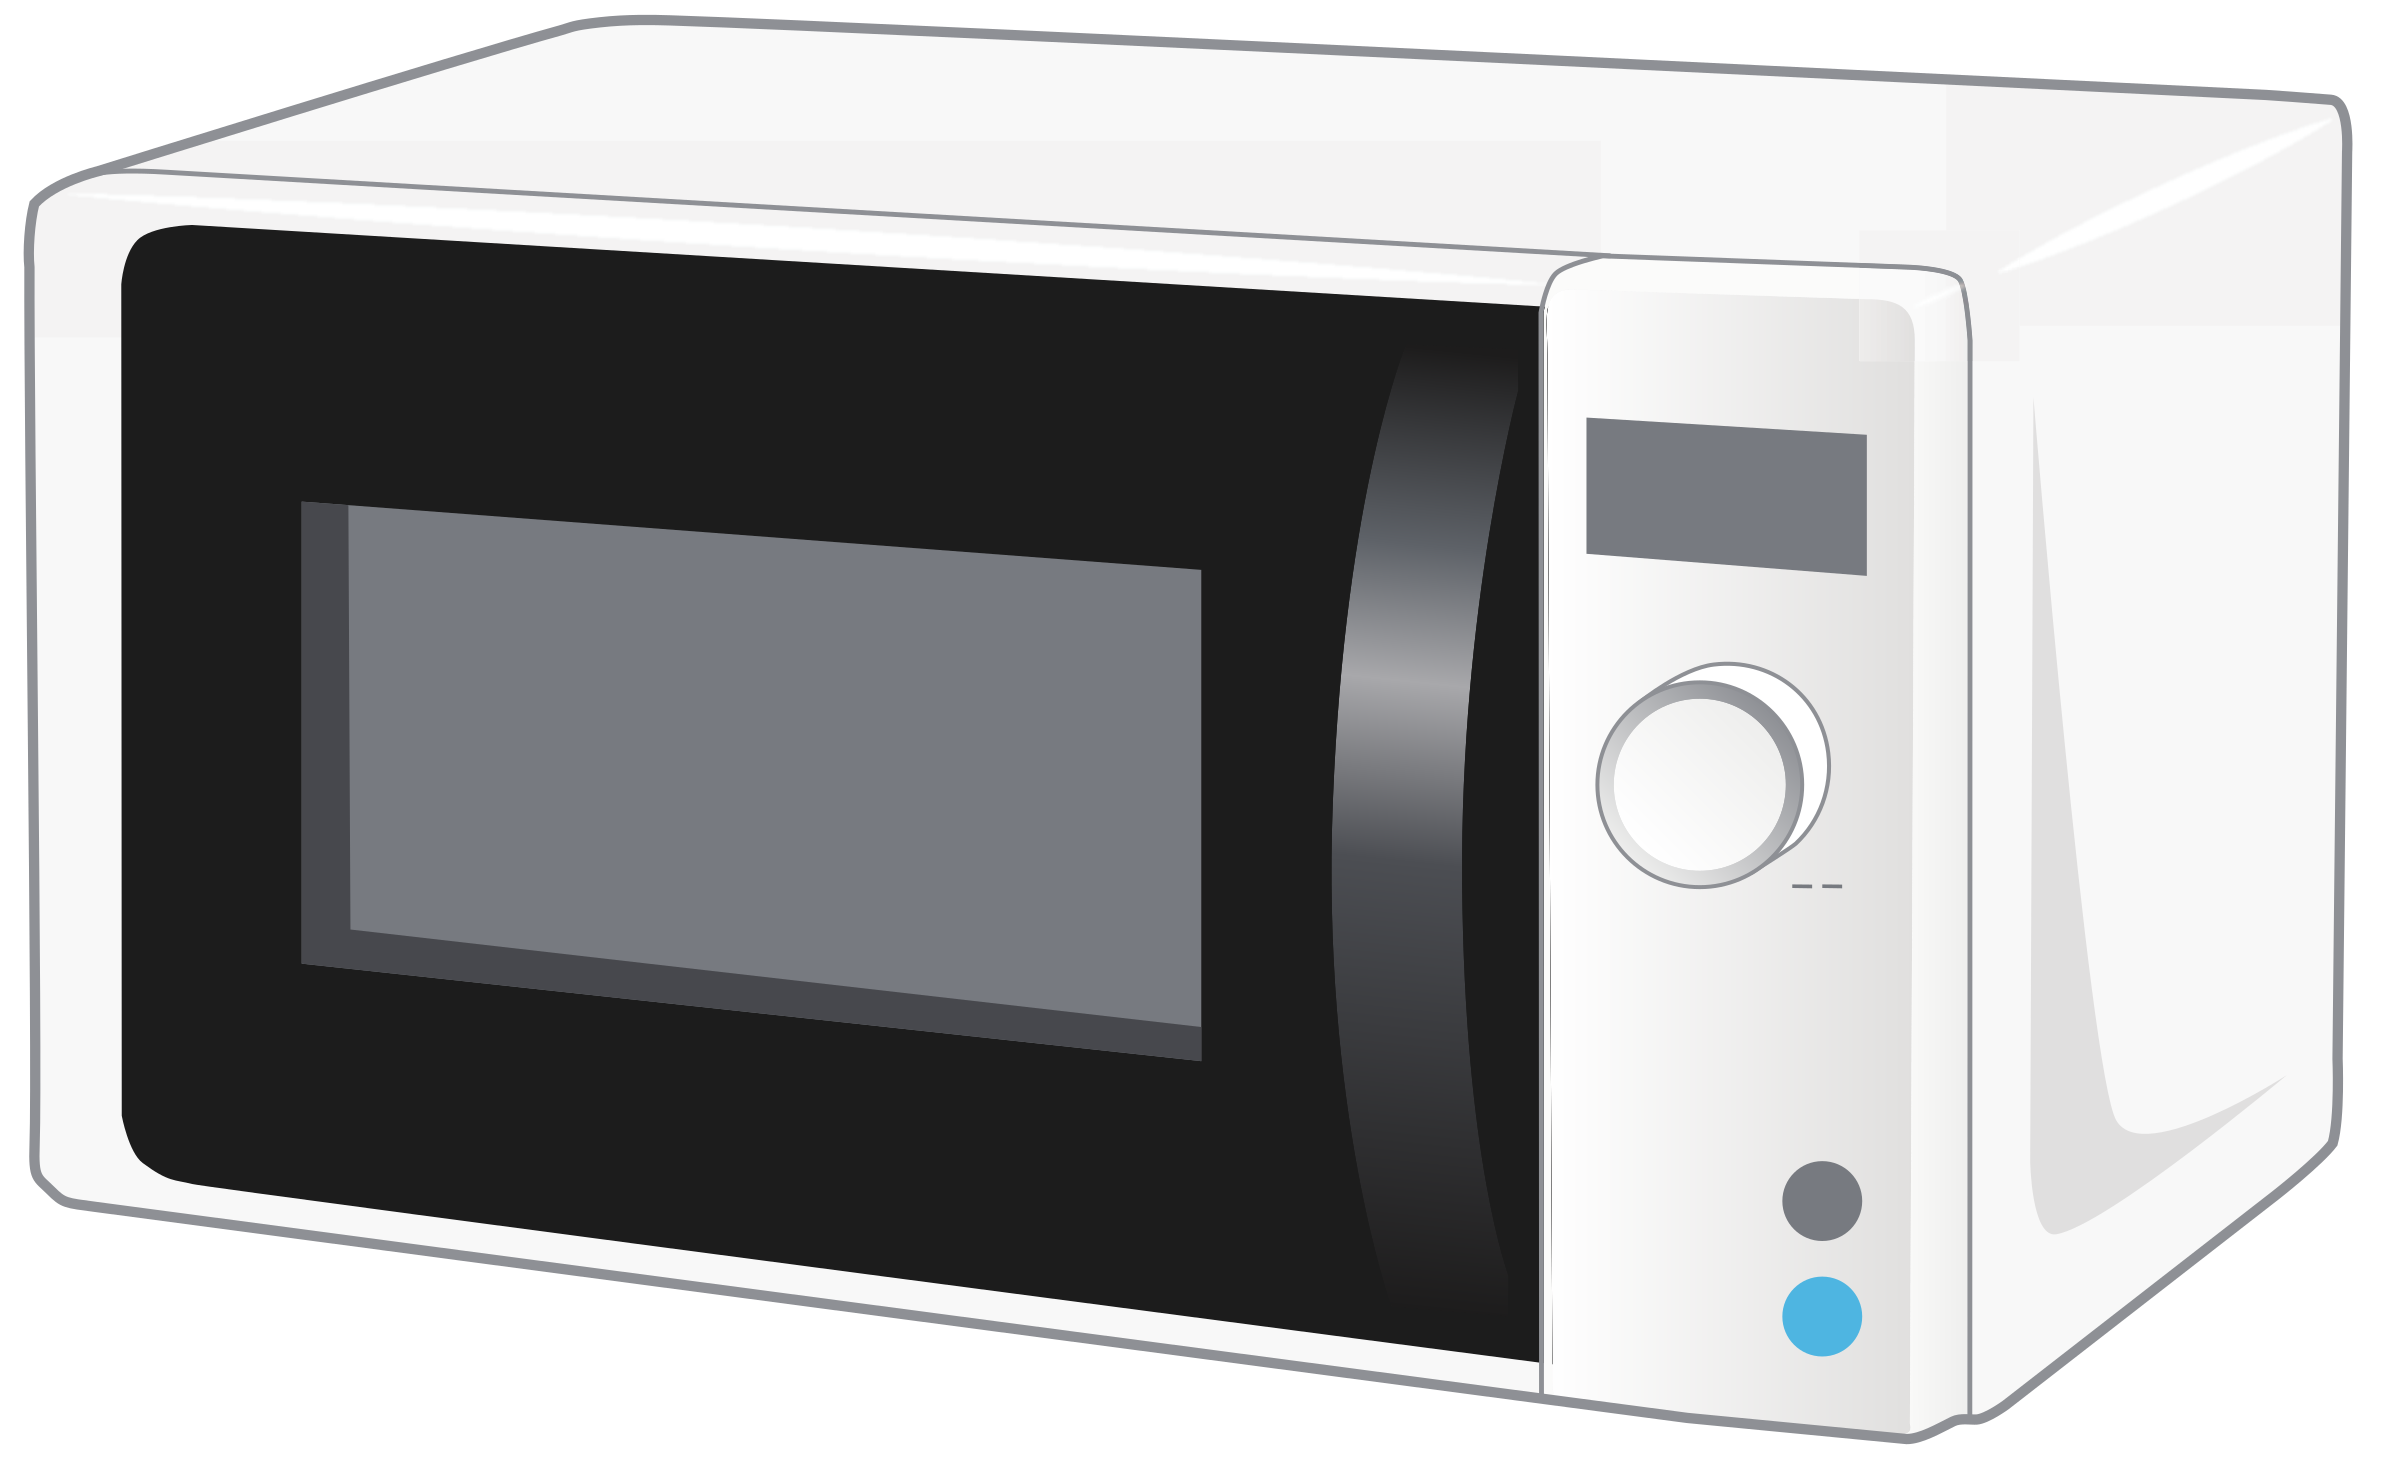 Clipart - Simple microvawe oven - 3D view